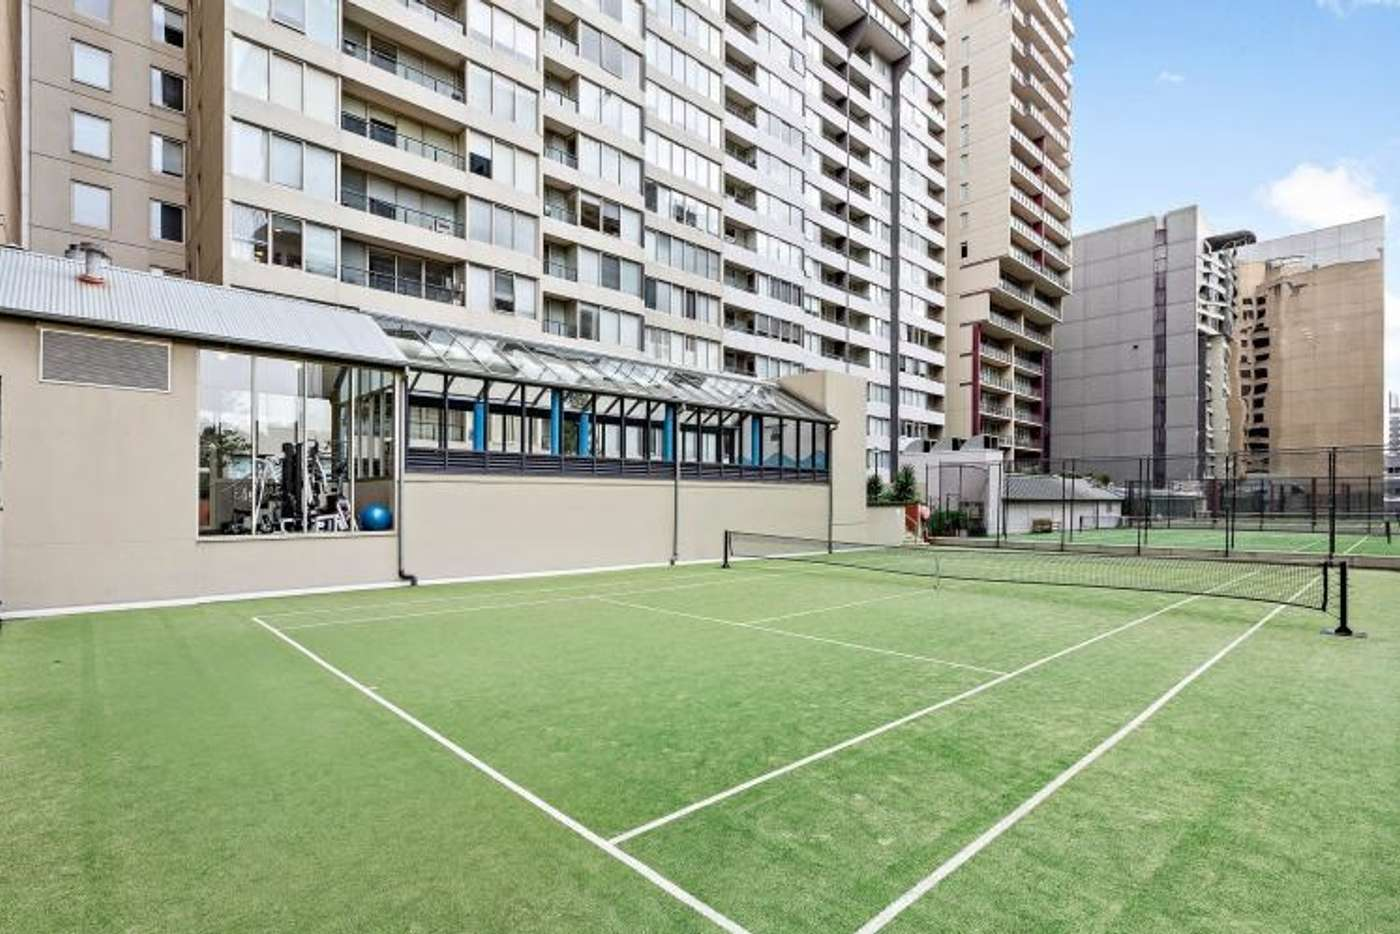 Main view of Homely apartment listing, 105/416 St Kilda Road, Melbourne VIC 3004